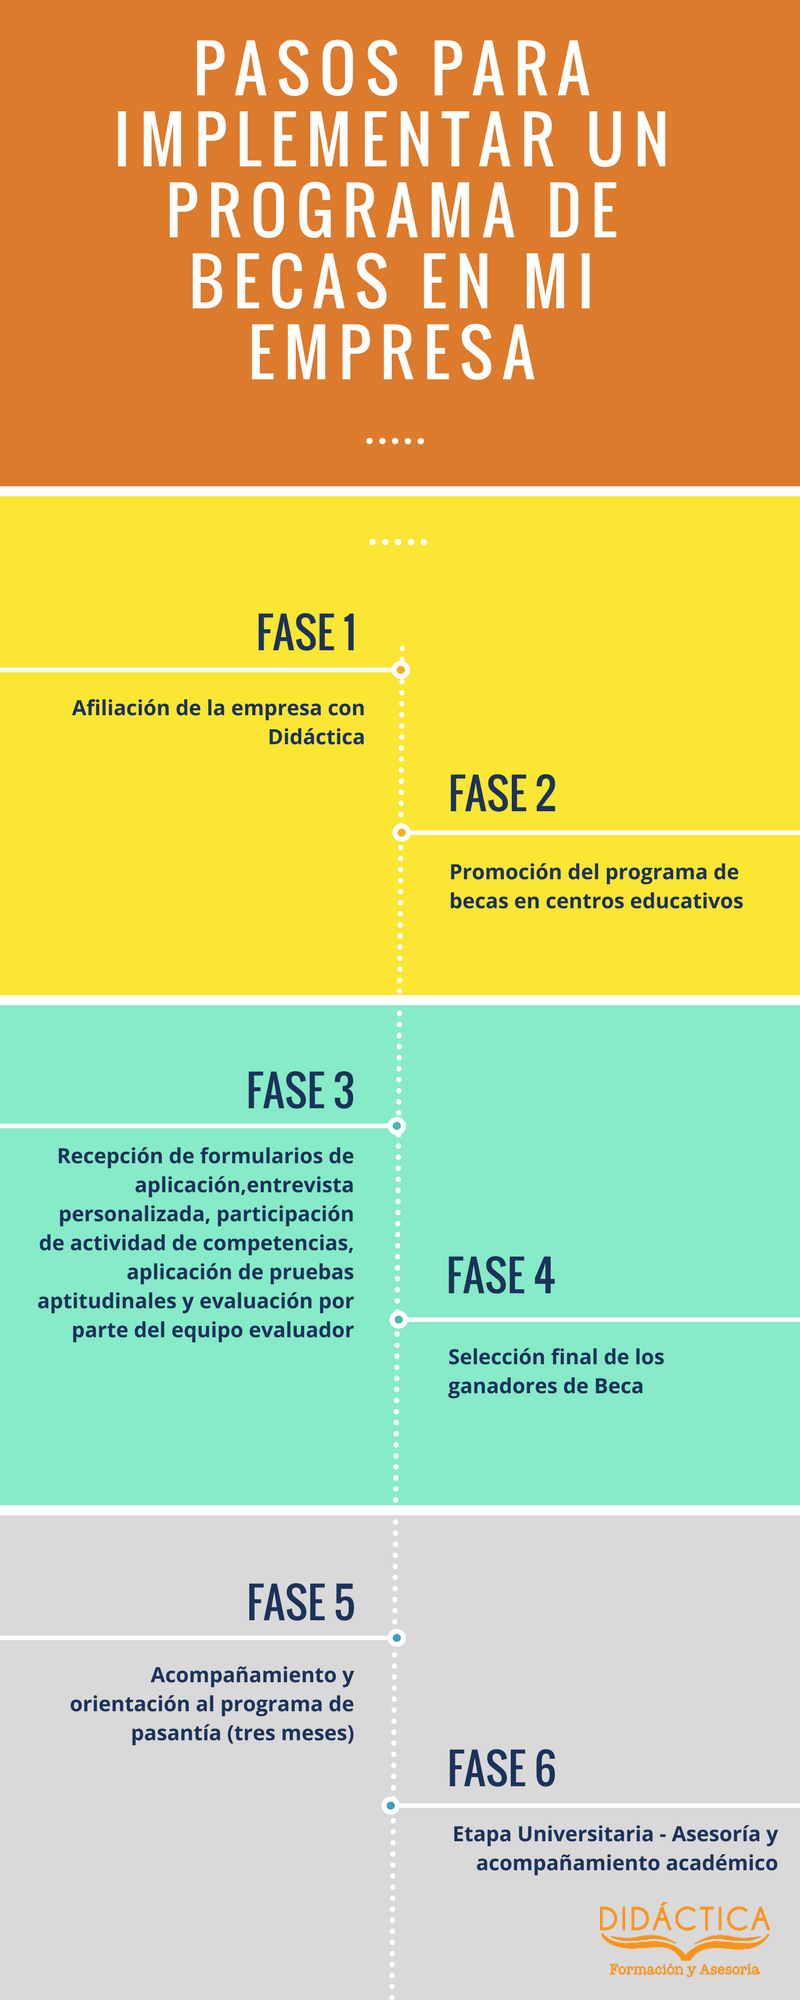 test - An Infographic from Didáctica S.R.L.